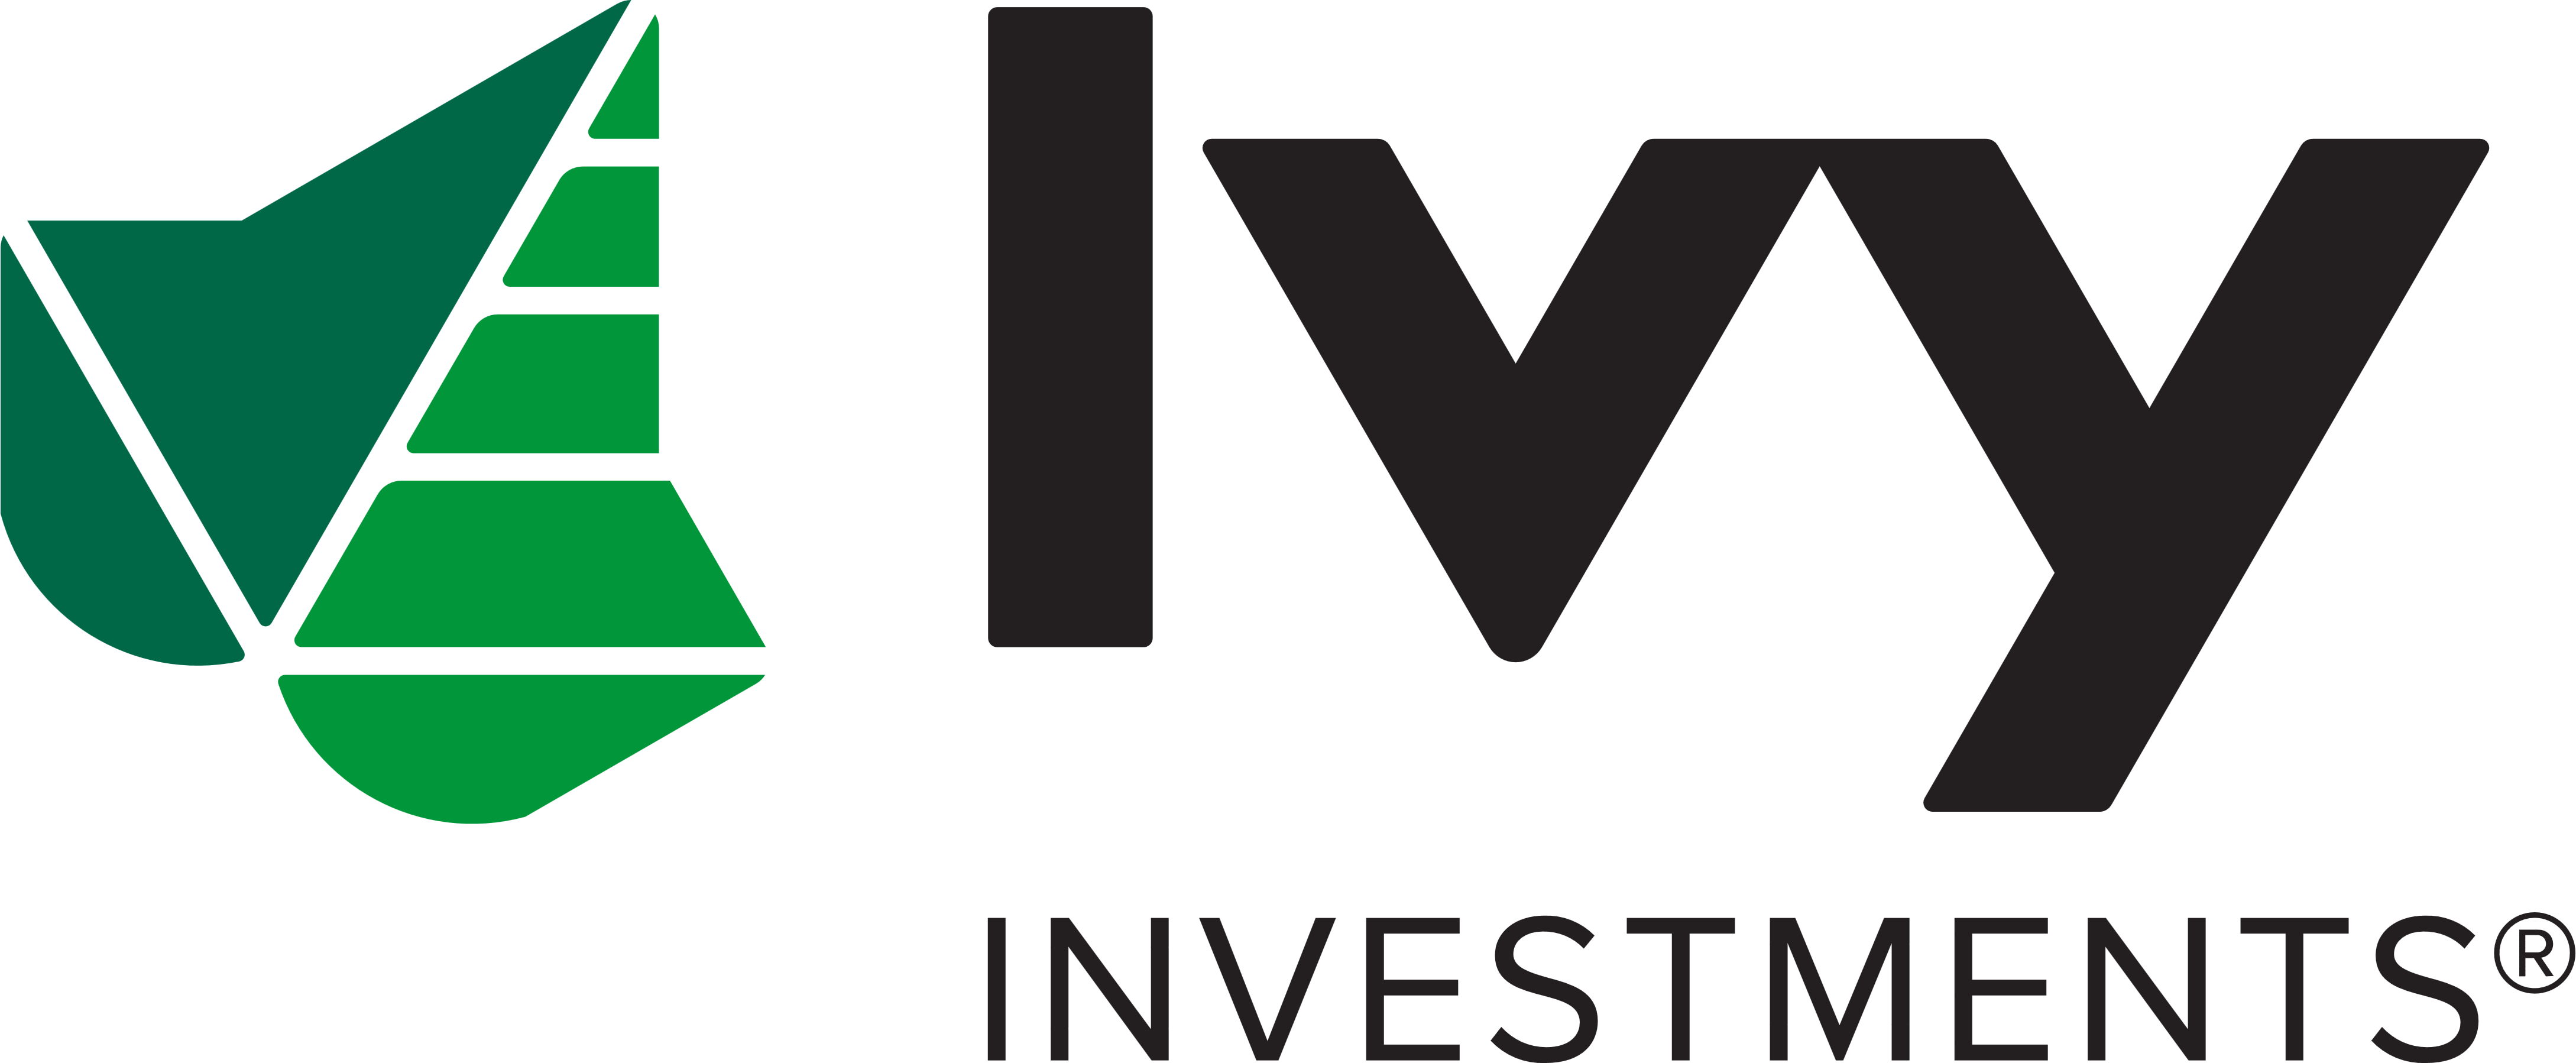 Ivy Investments Logos Download